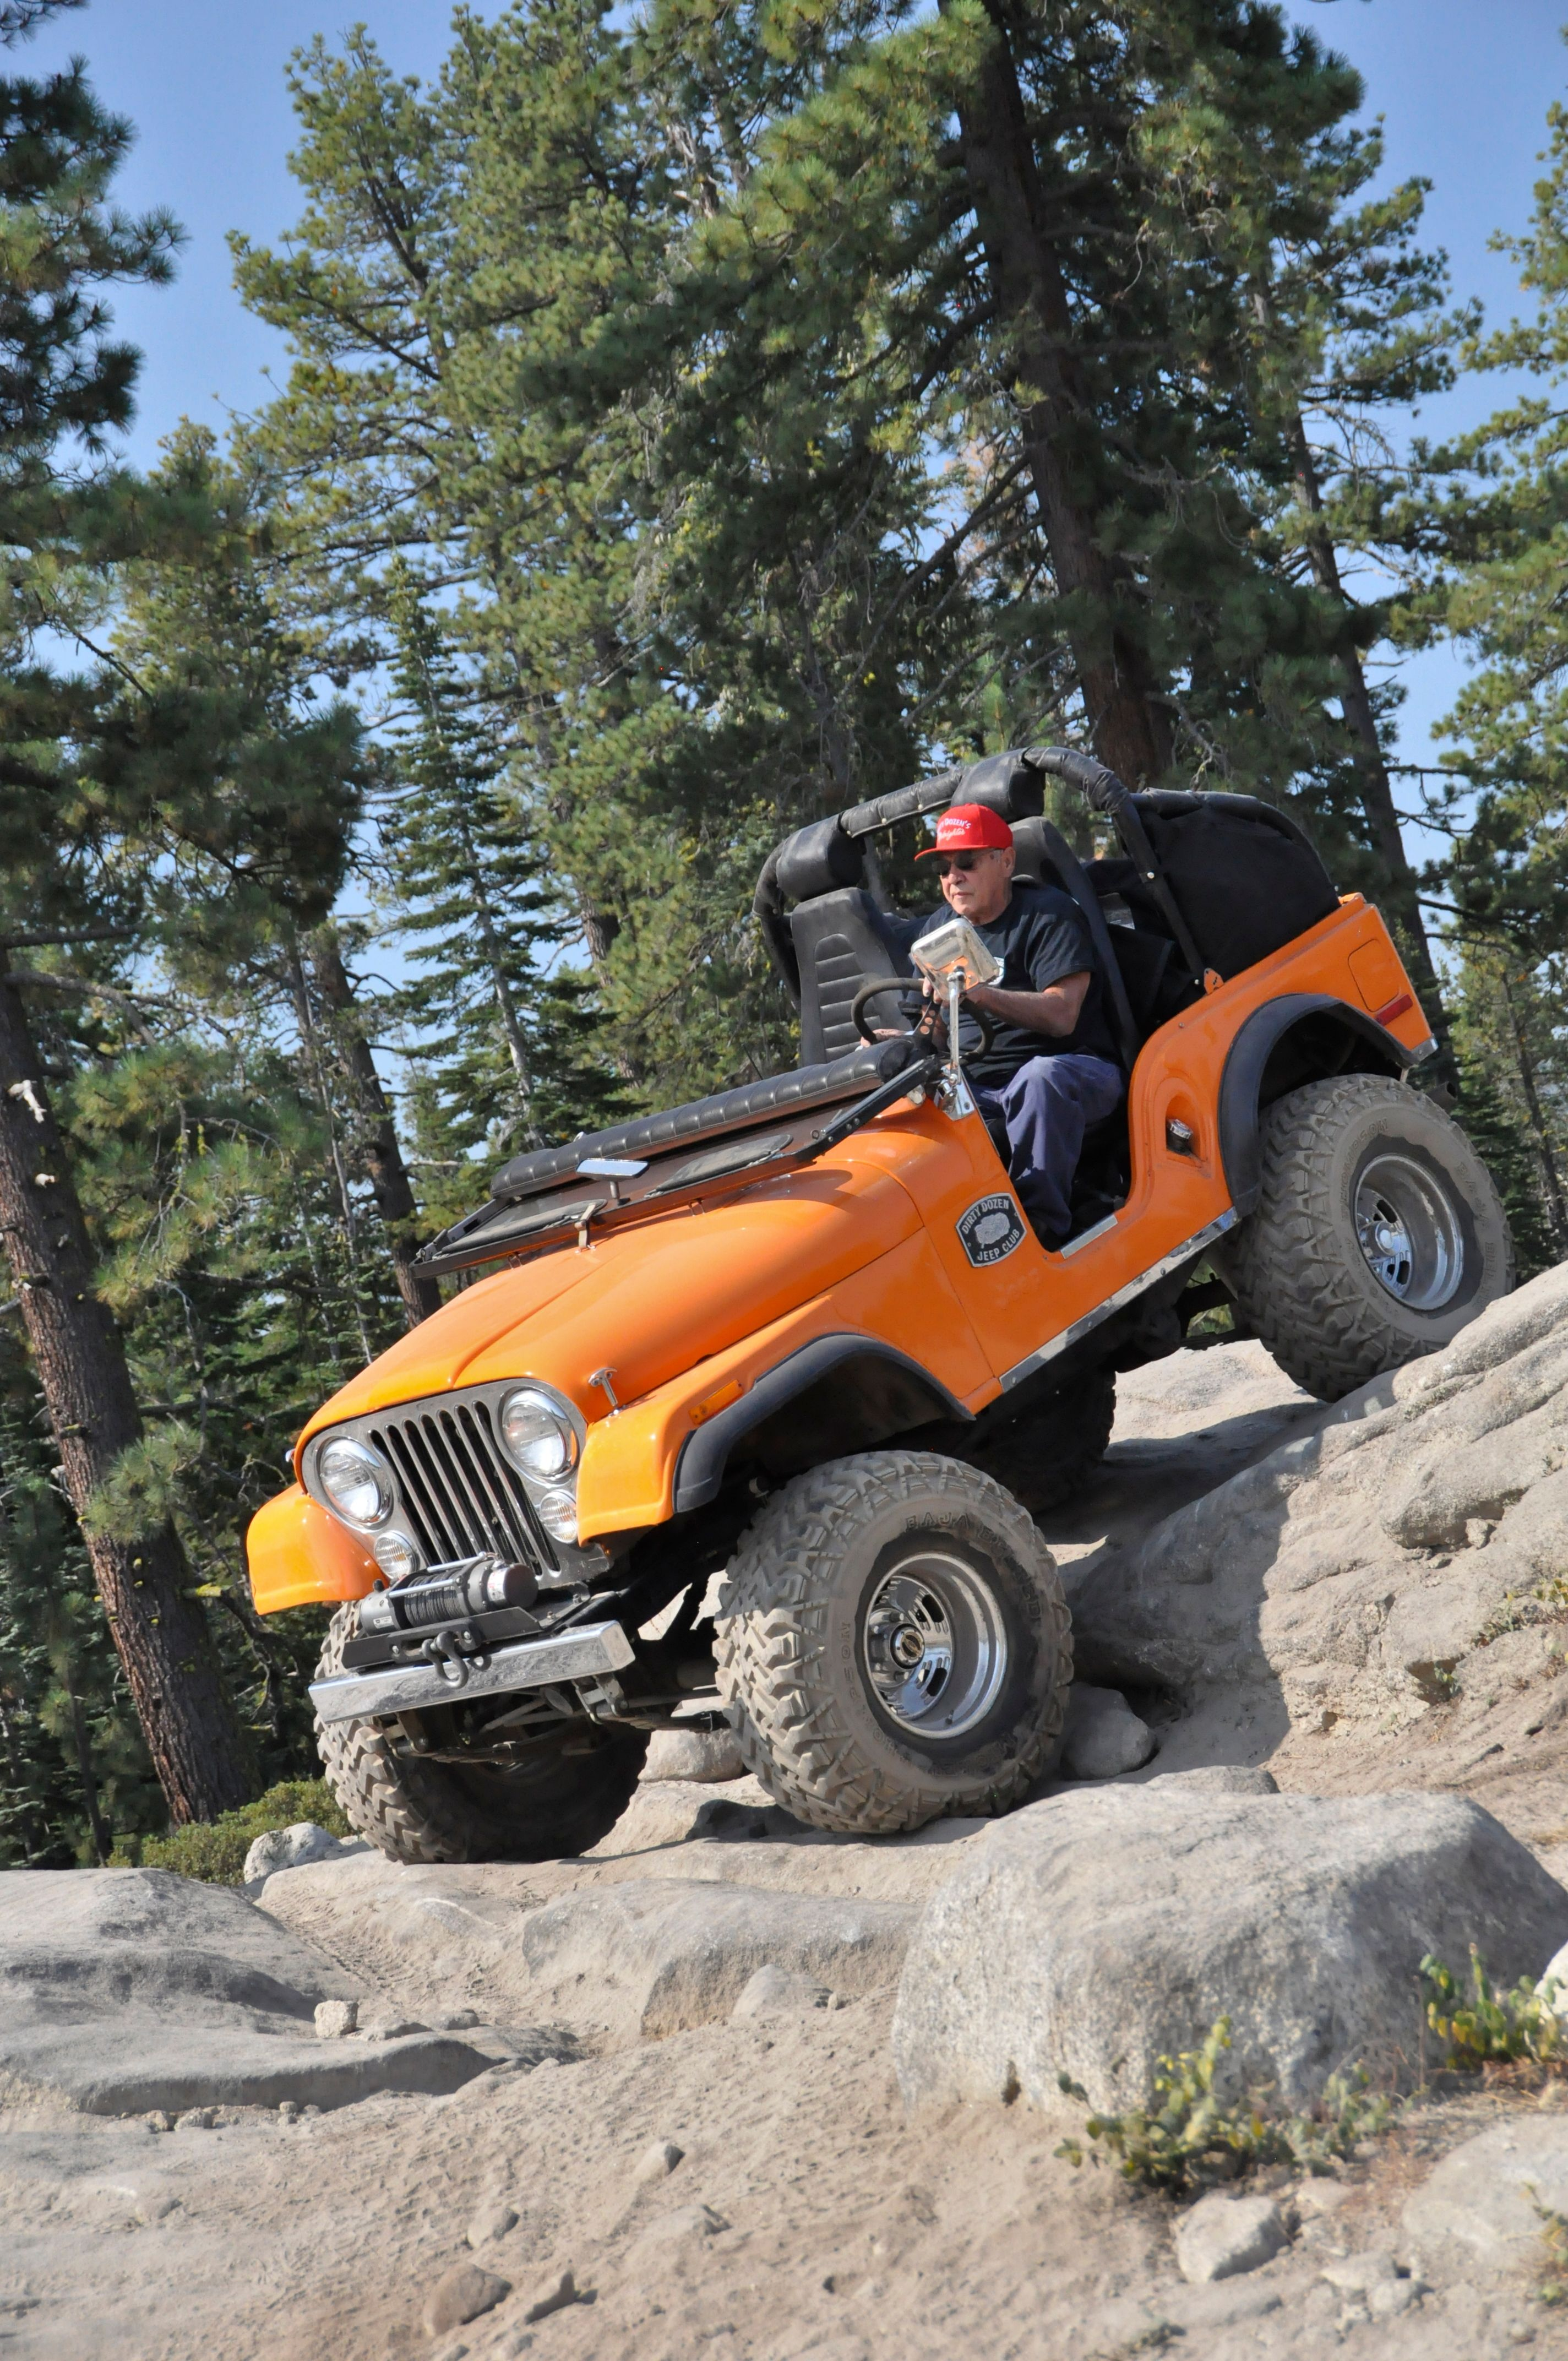 Jeep Wrangler Built To Conquer Unconquerable Trails With Style Since 1941 Axleboy Offr Jeep Cj Jeep Cj7 Jeep Cj5